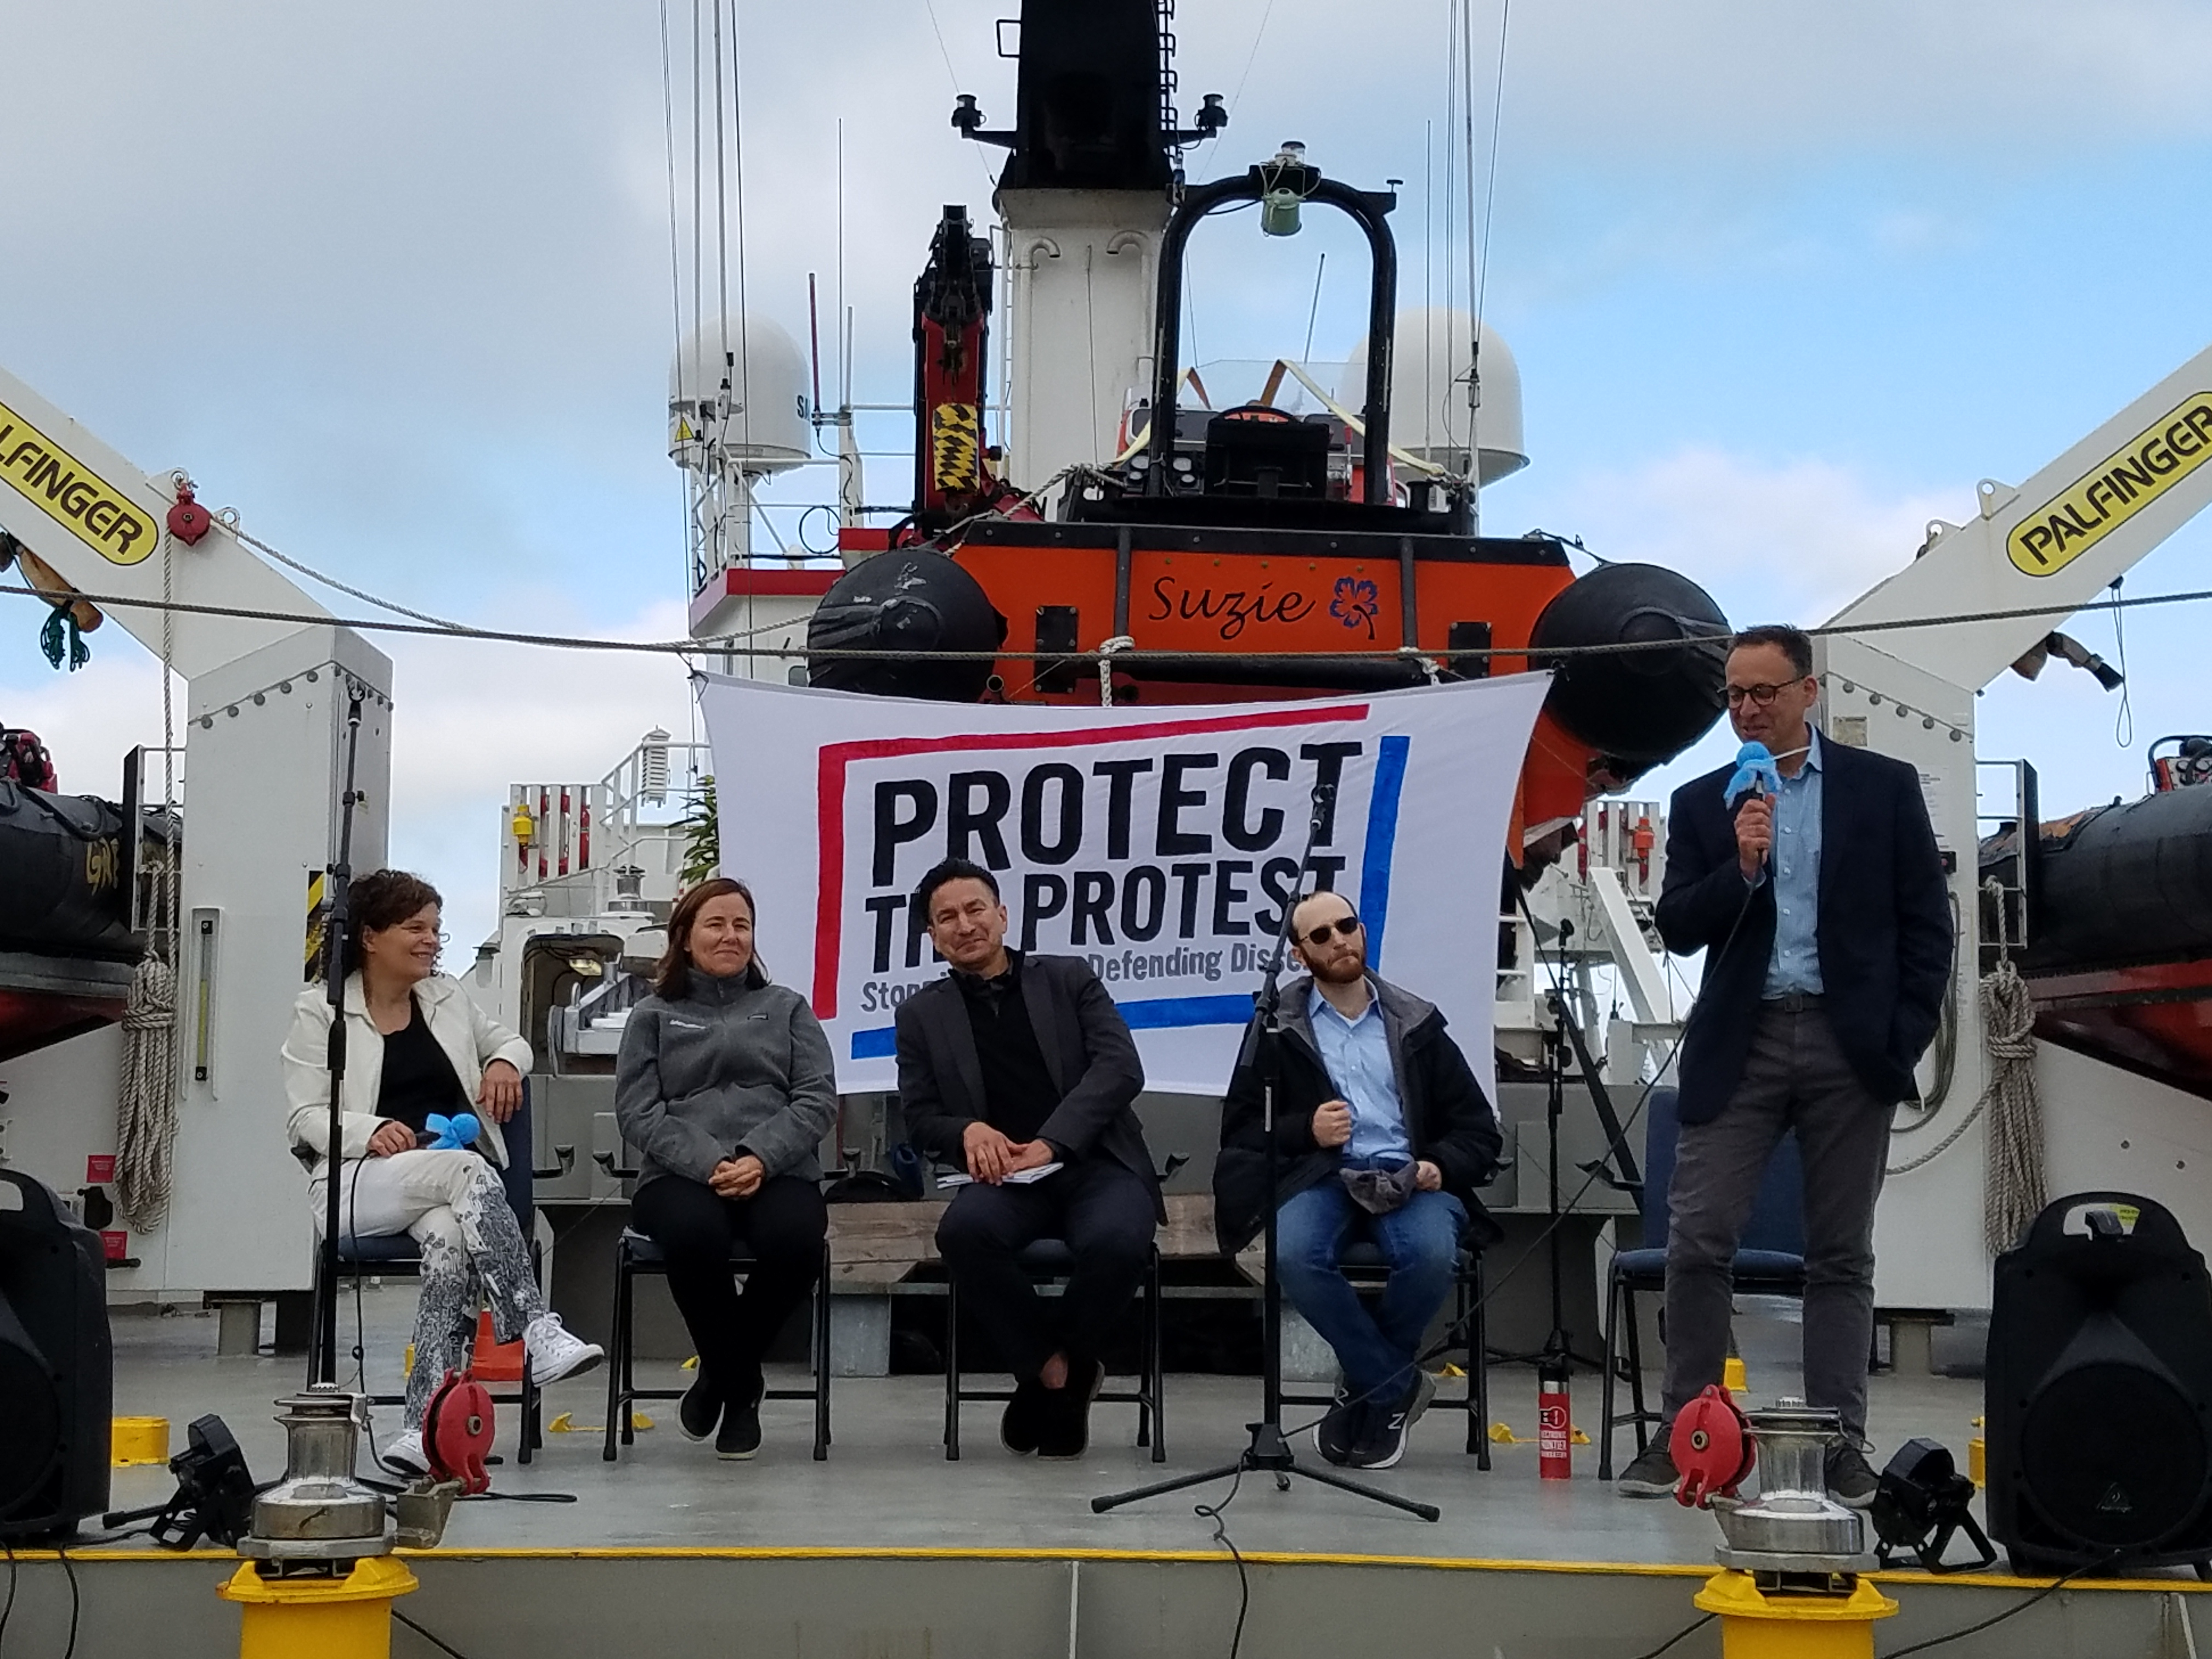 Aboard a ship that is carrying three smaller boats, four people face an audience to discuss their civil liberties work. A banner that says